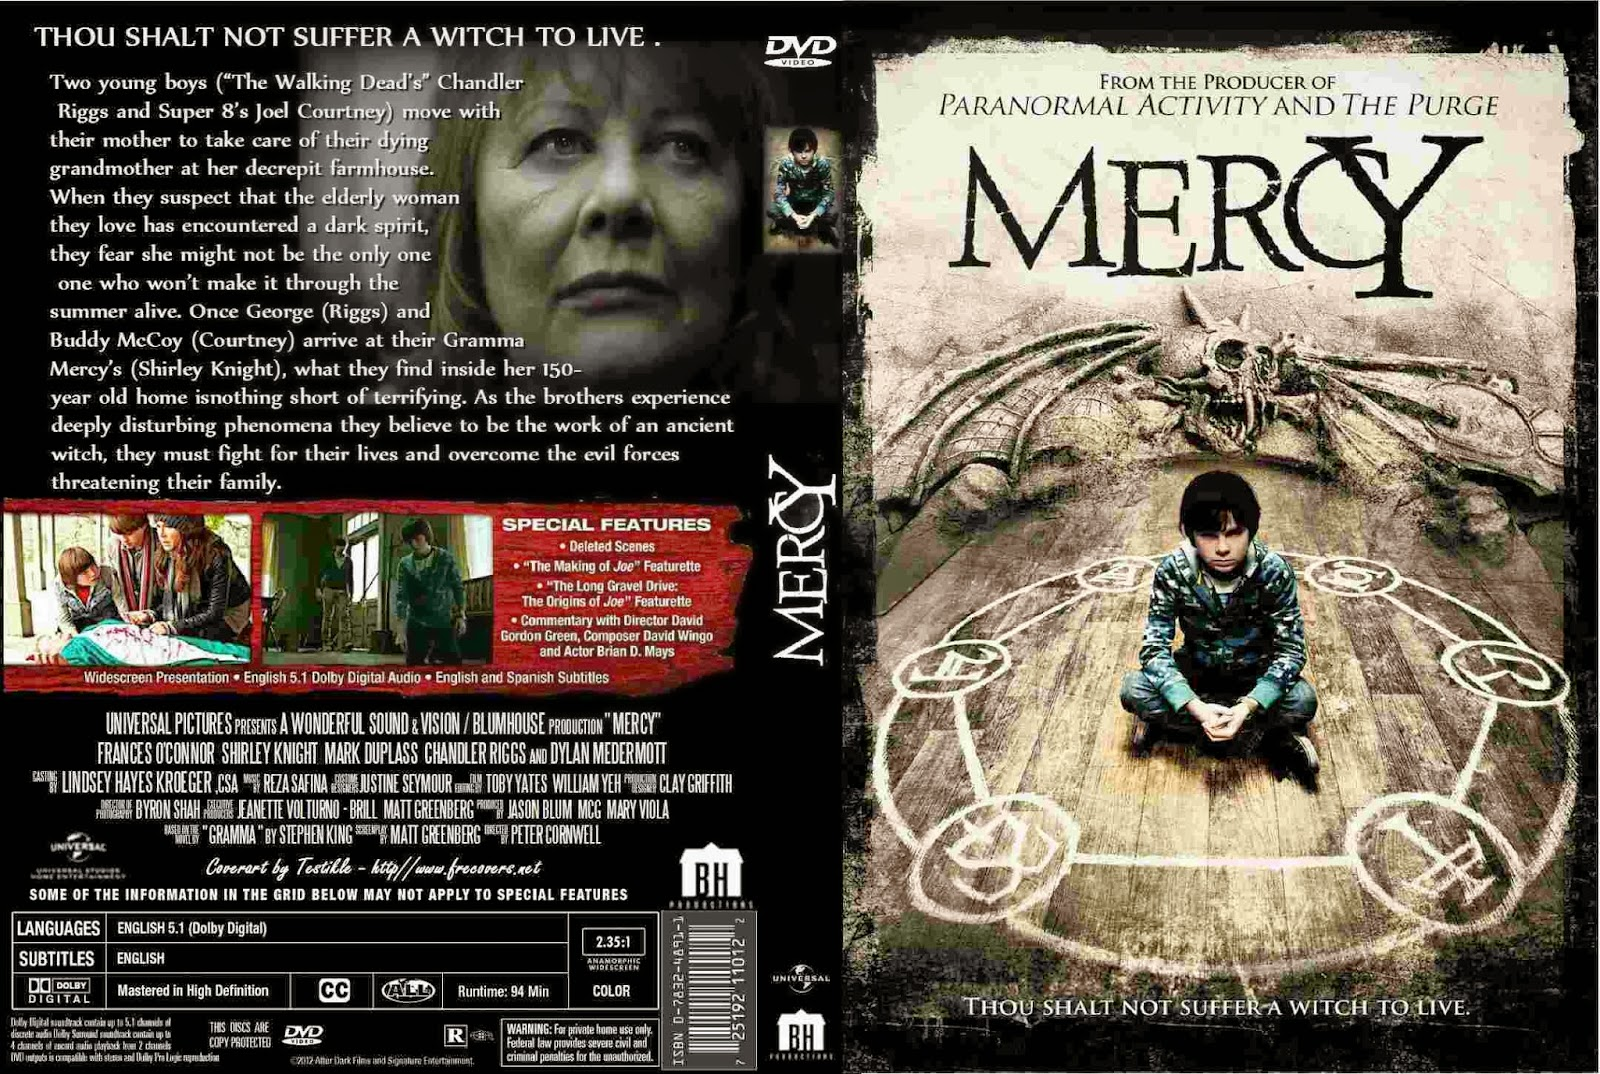 Download Mercy DVDRip XviD Dual Áudio Mercy 252B 2014  252B  252BCover 252BDVD 252BMovie